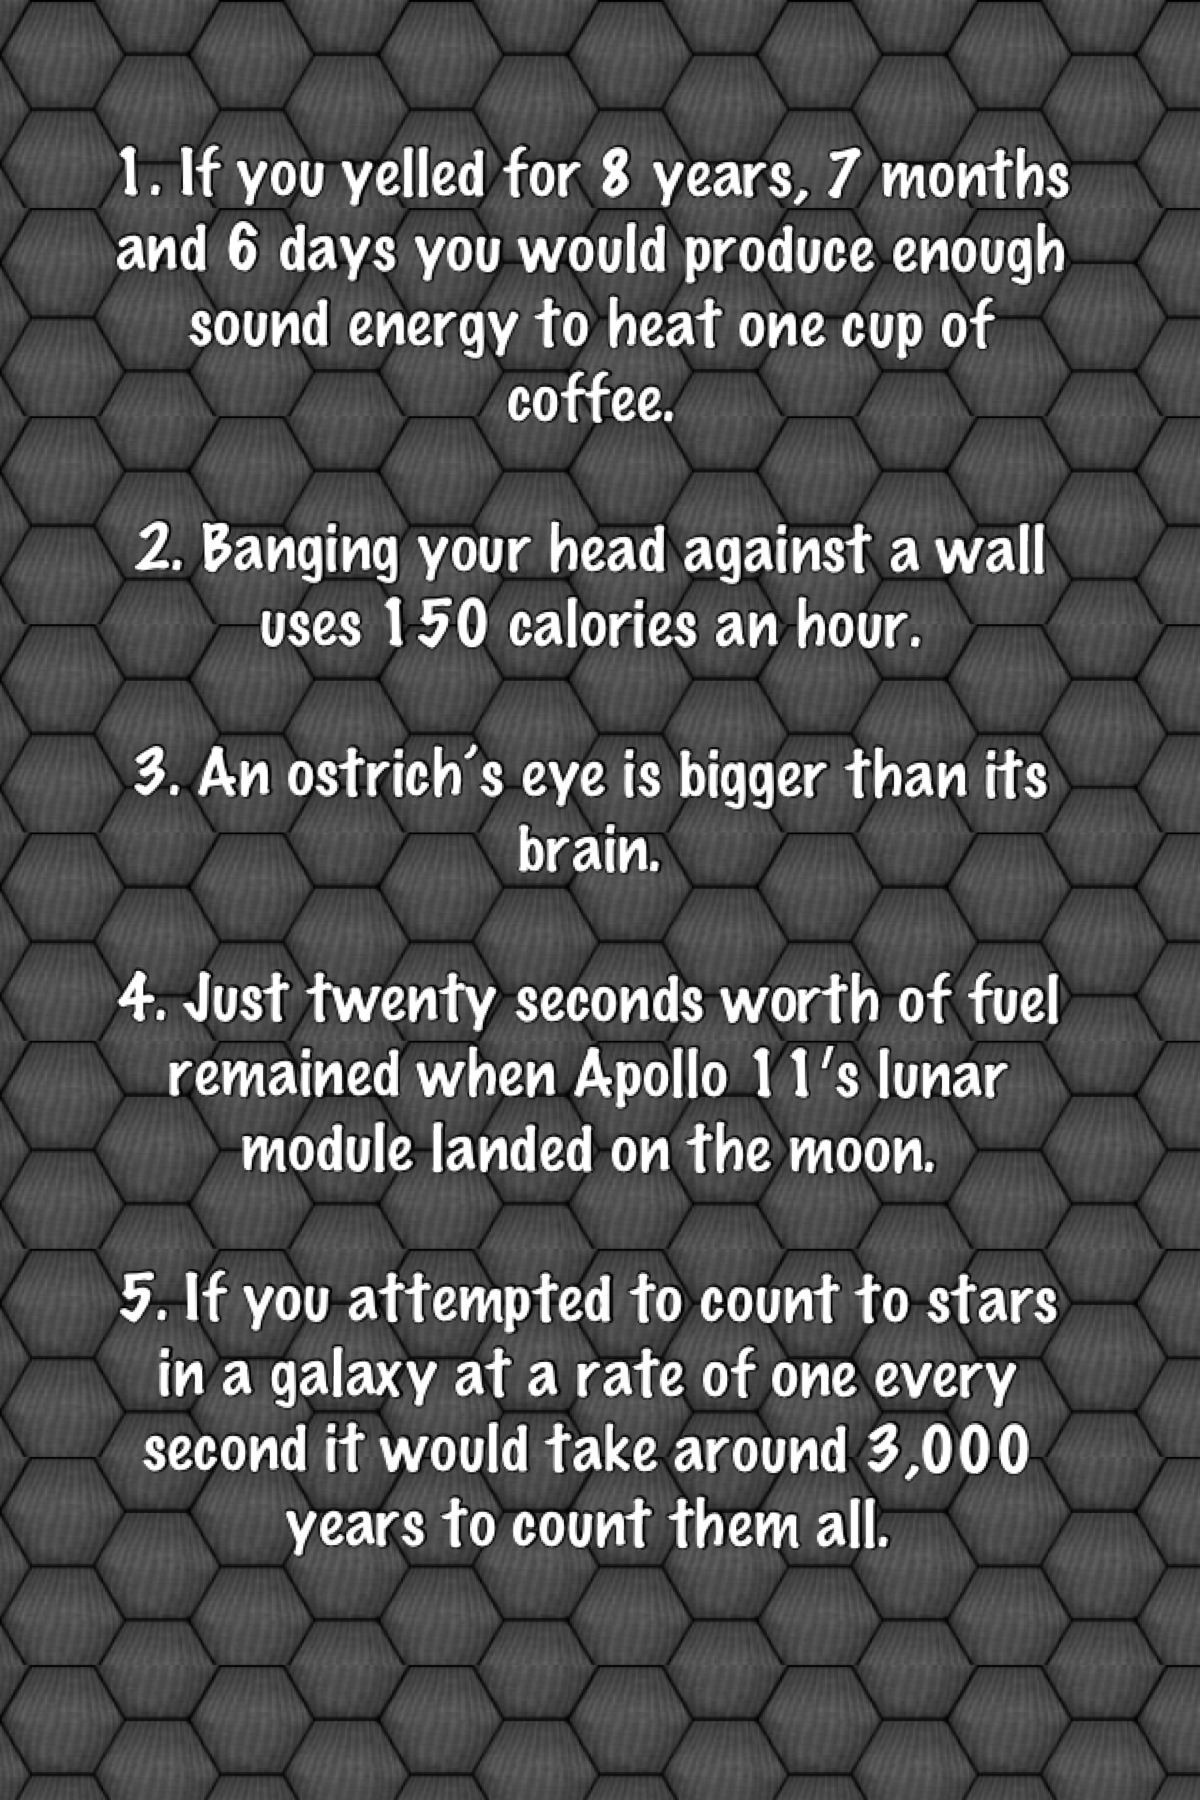 5 Random Yet Interesting Facts Fun Facts Learn Something New